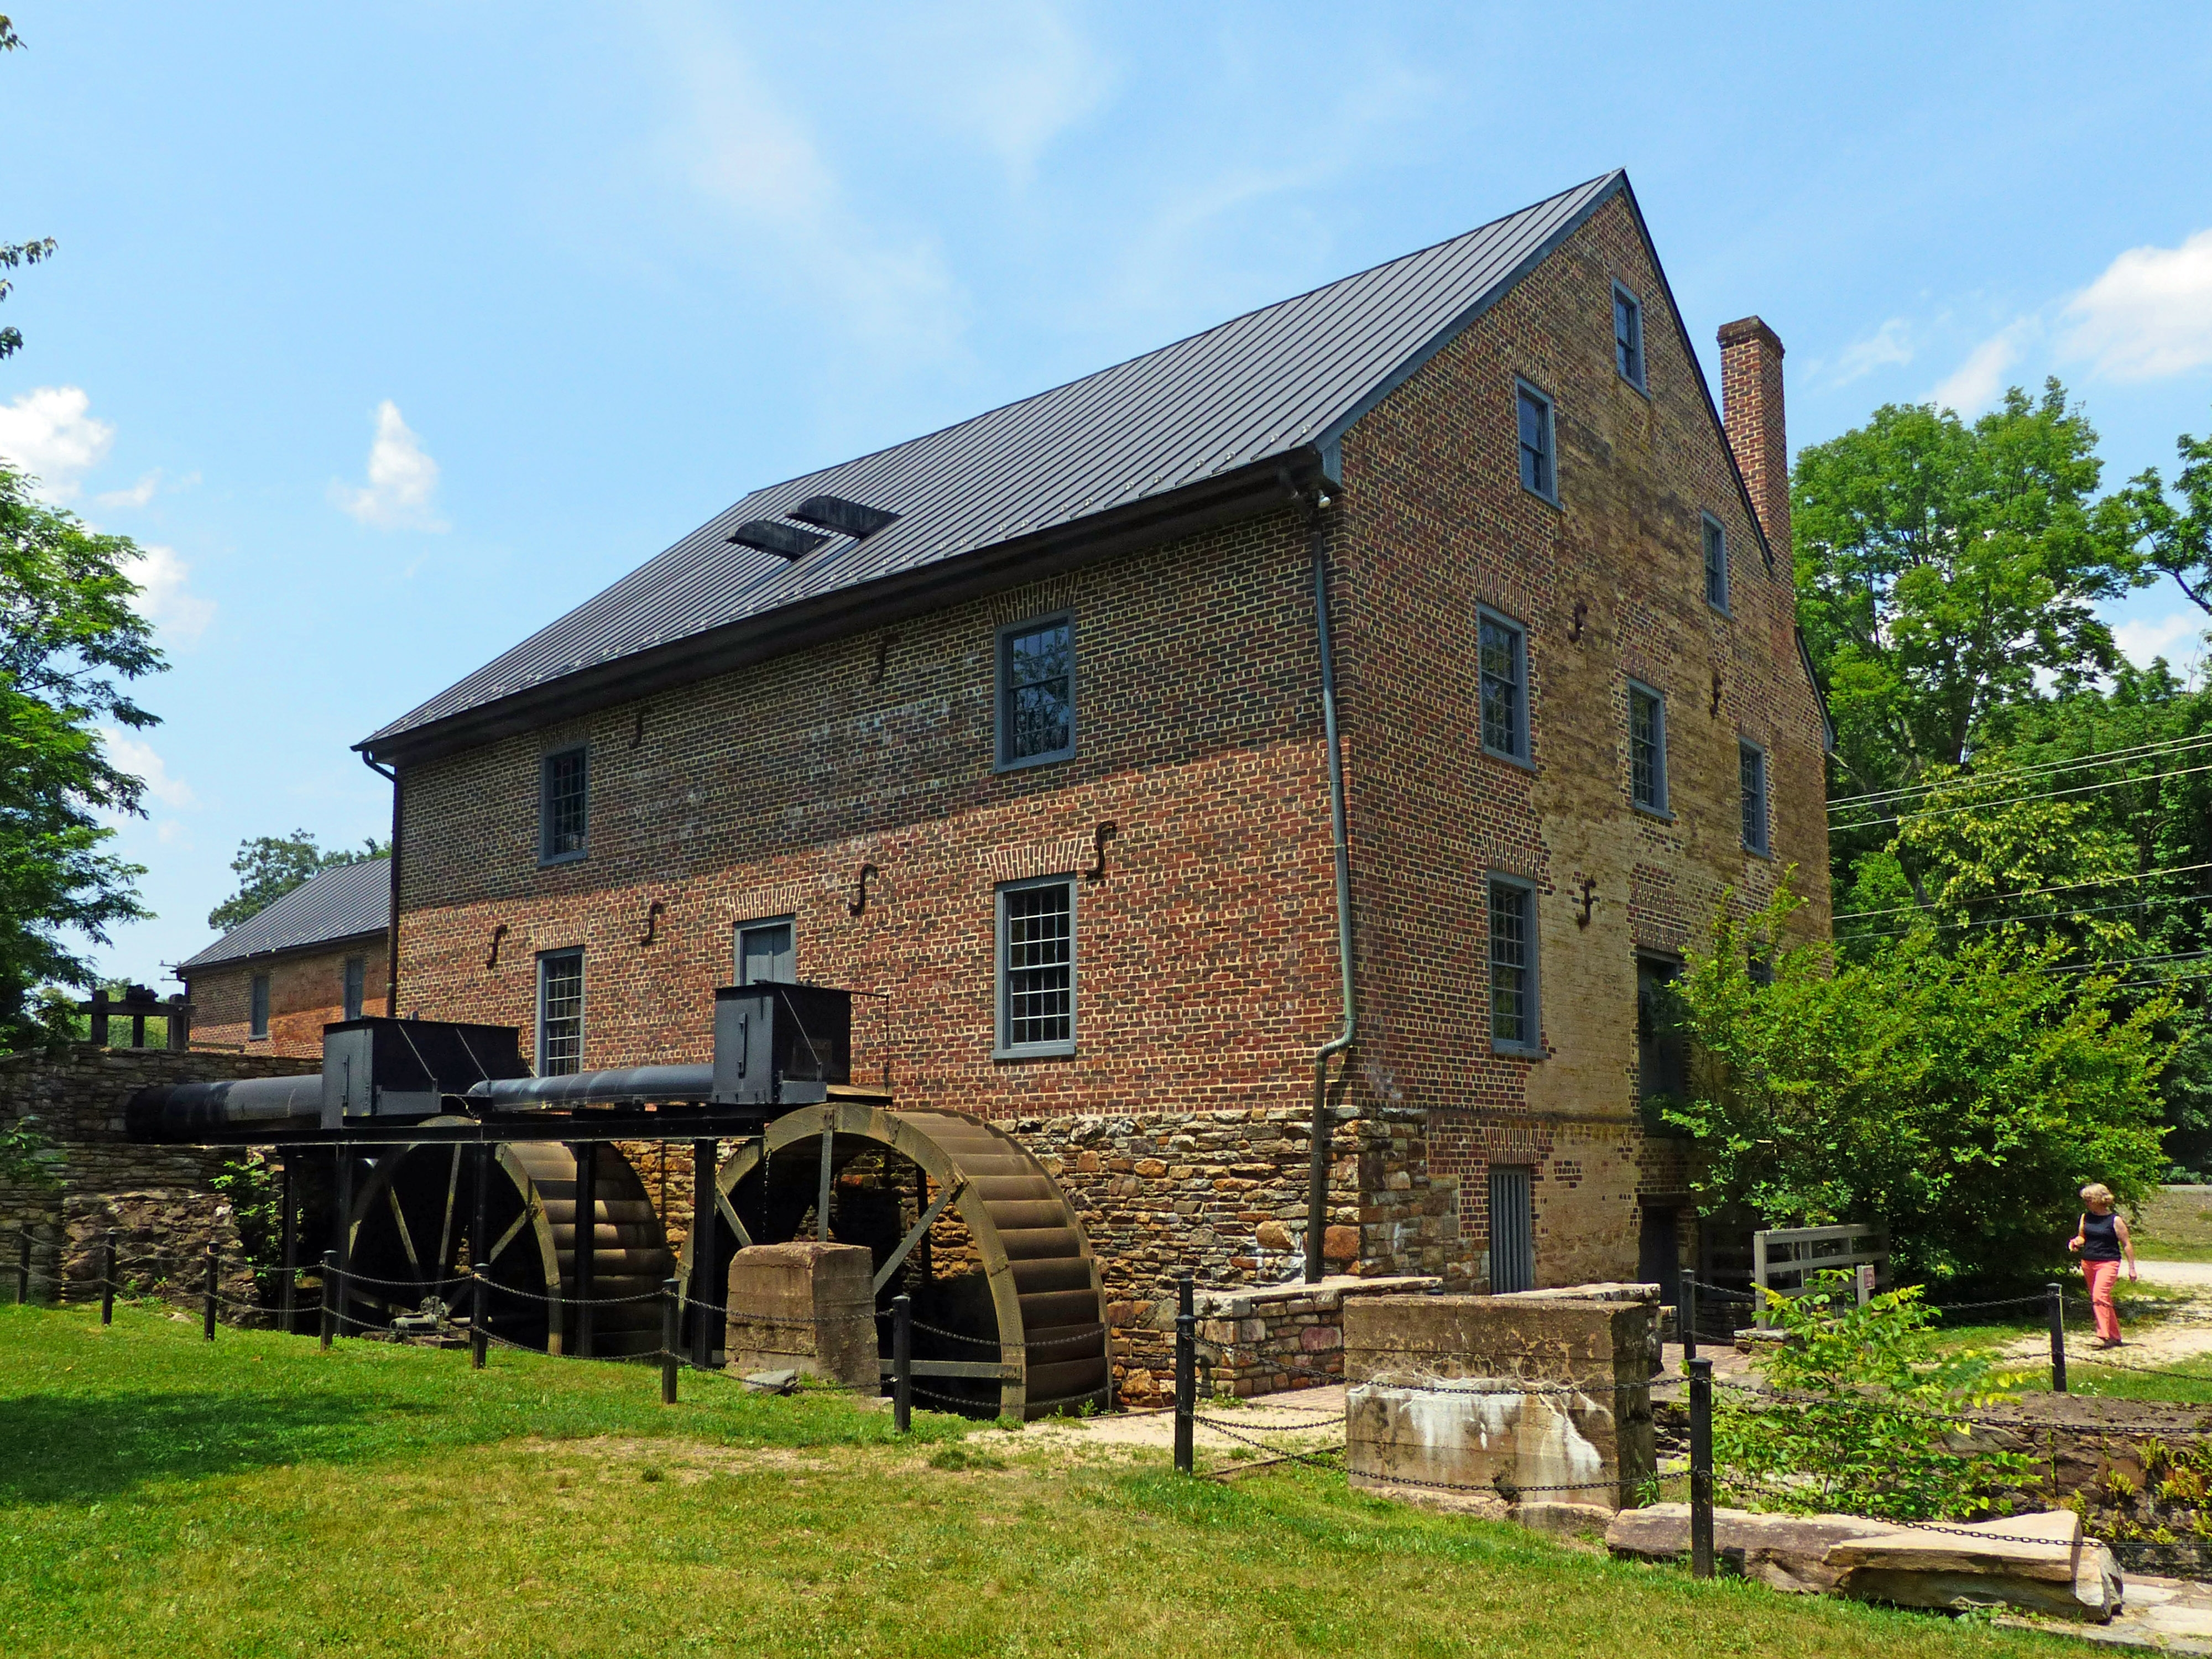 The Aldie Mill